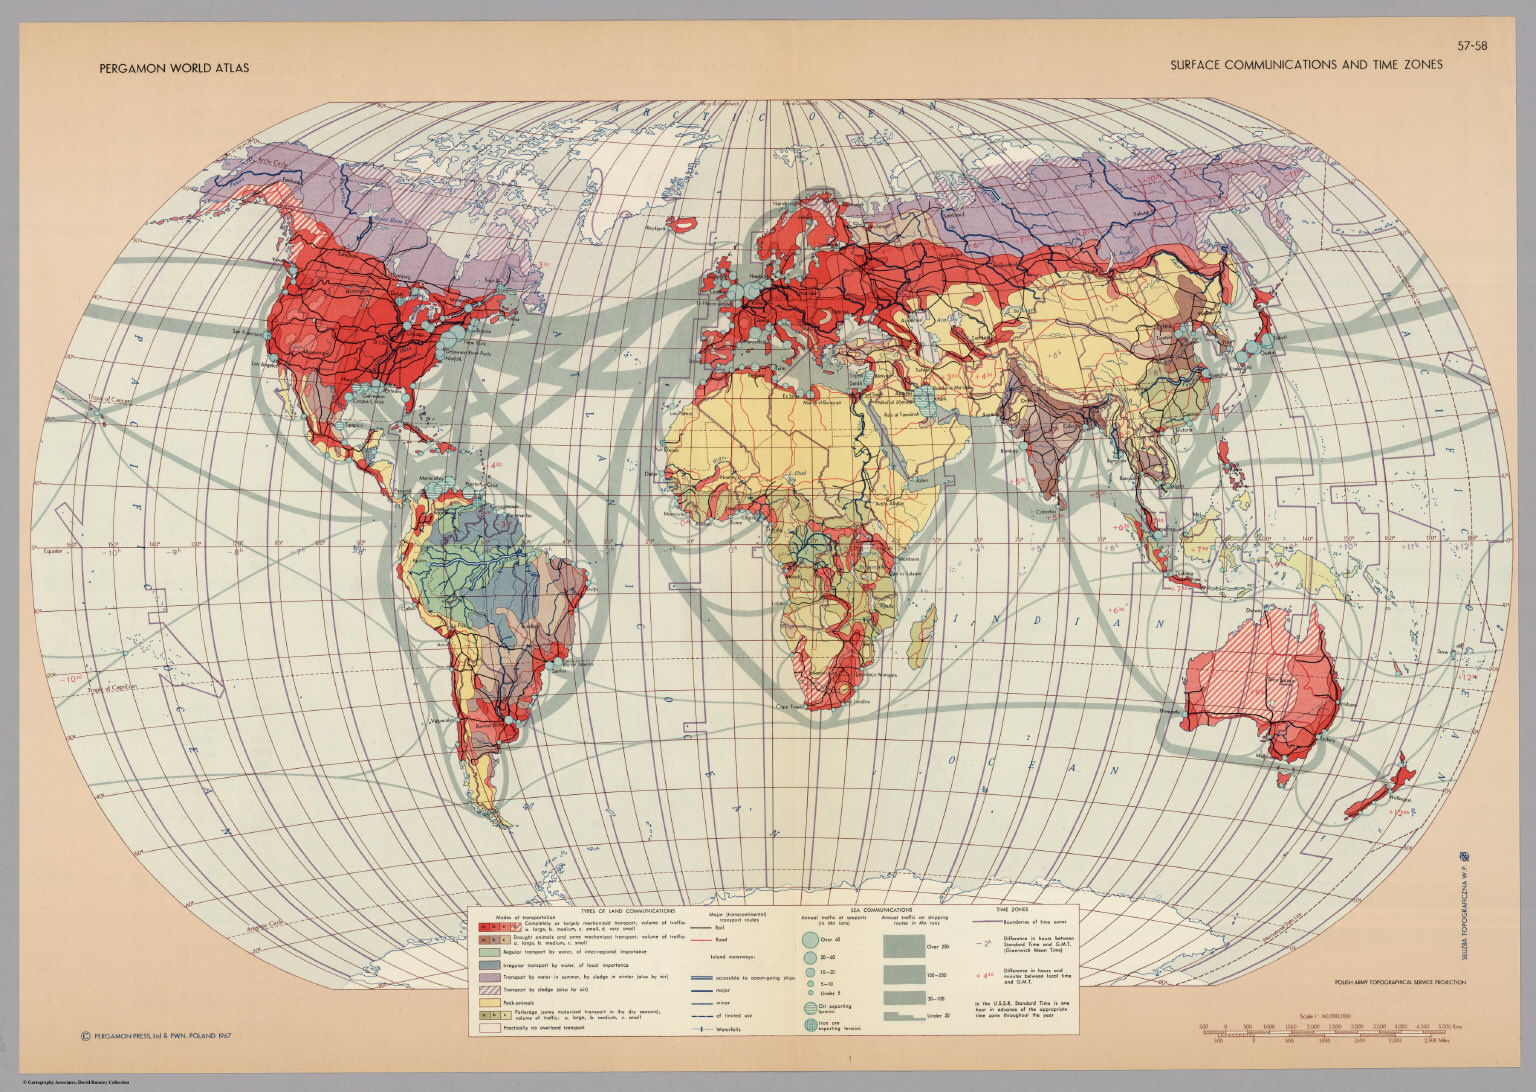 Surface communications and time zones pergamon world atlas surface communications and time zones pergamon world atlas gumiabroncs Images